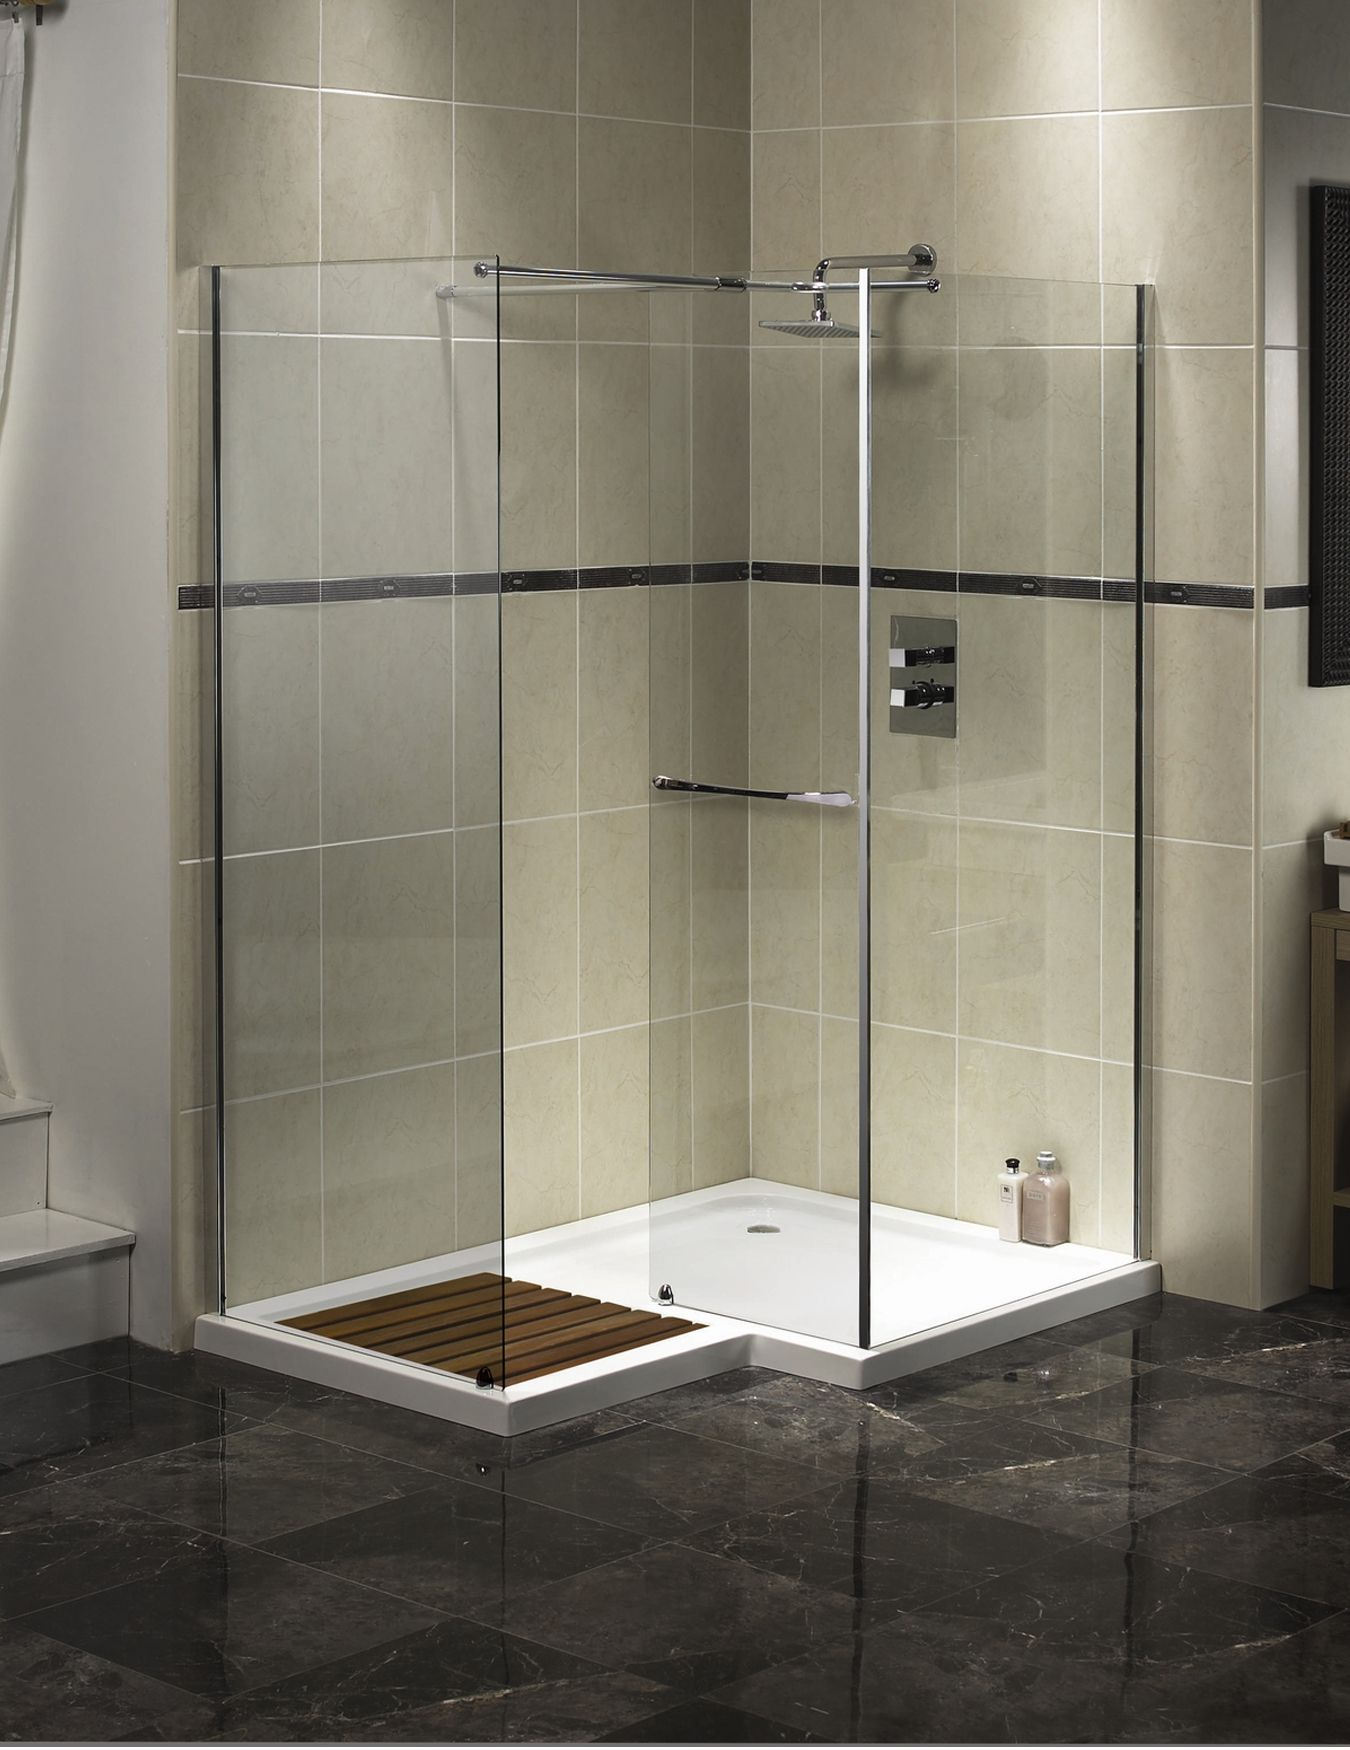 Decorate Corner Walk In Shower Designs with Glass Panels and Grey Tile Wall near Marble Flooring